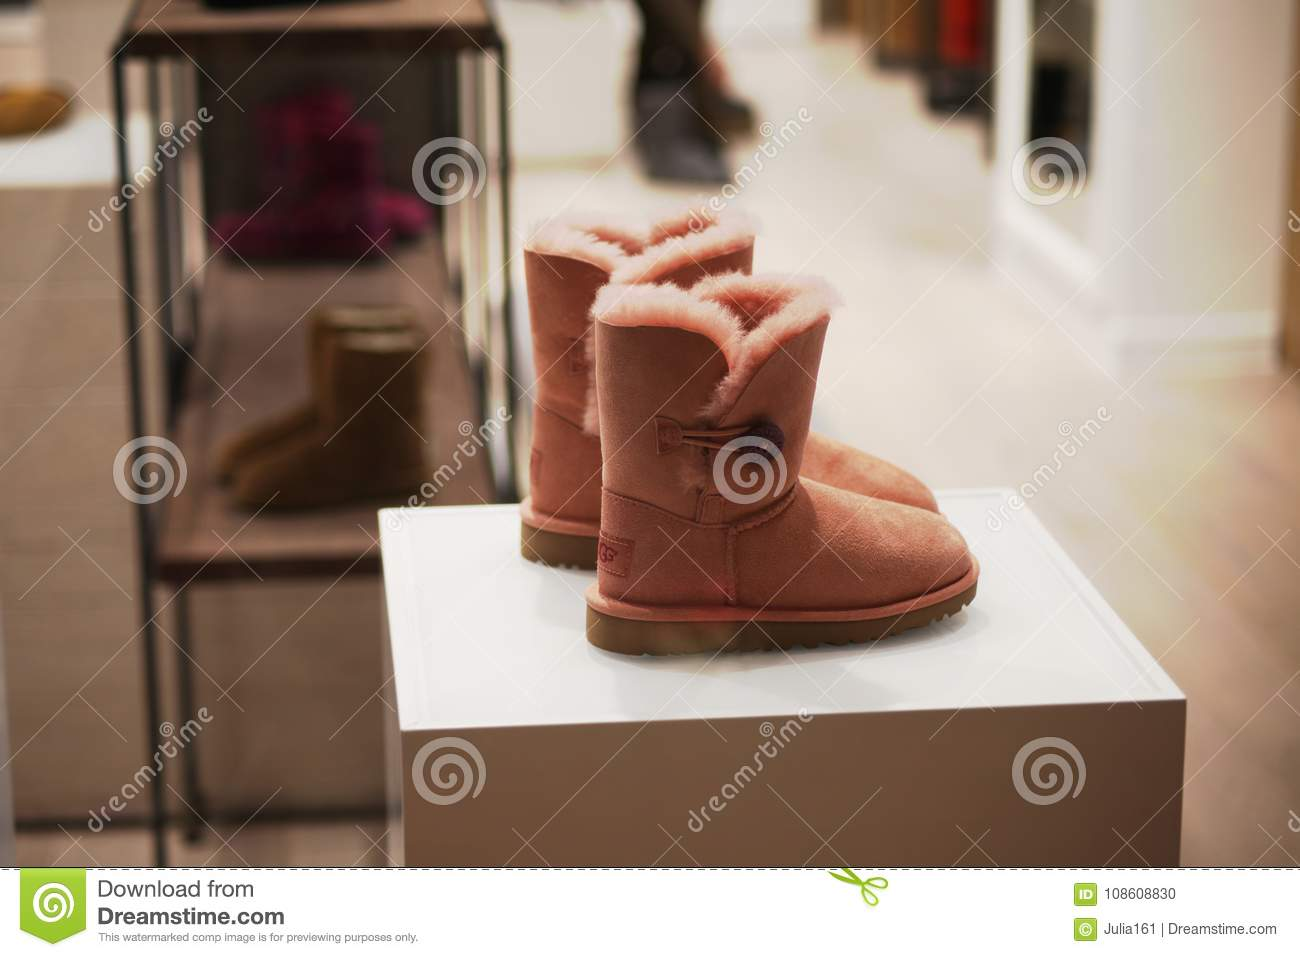 ba2766c48360 UGG sheep skin boots for sale in GUM department store